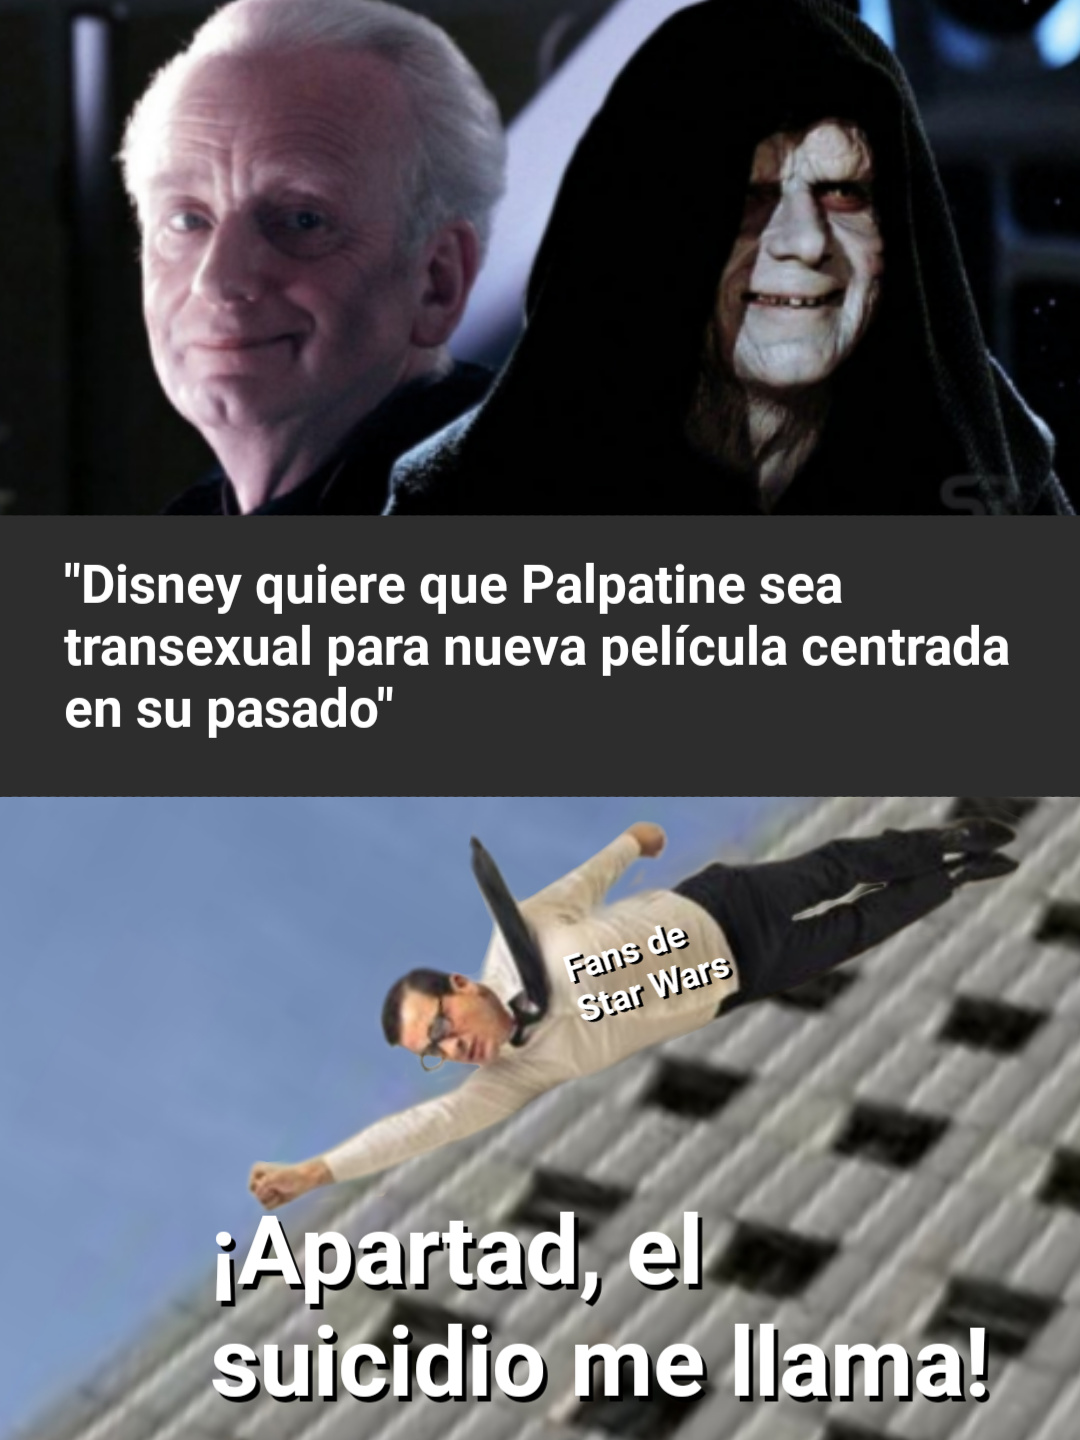 Star wars en manos de Disney... - meme